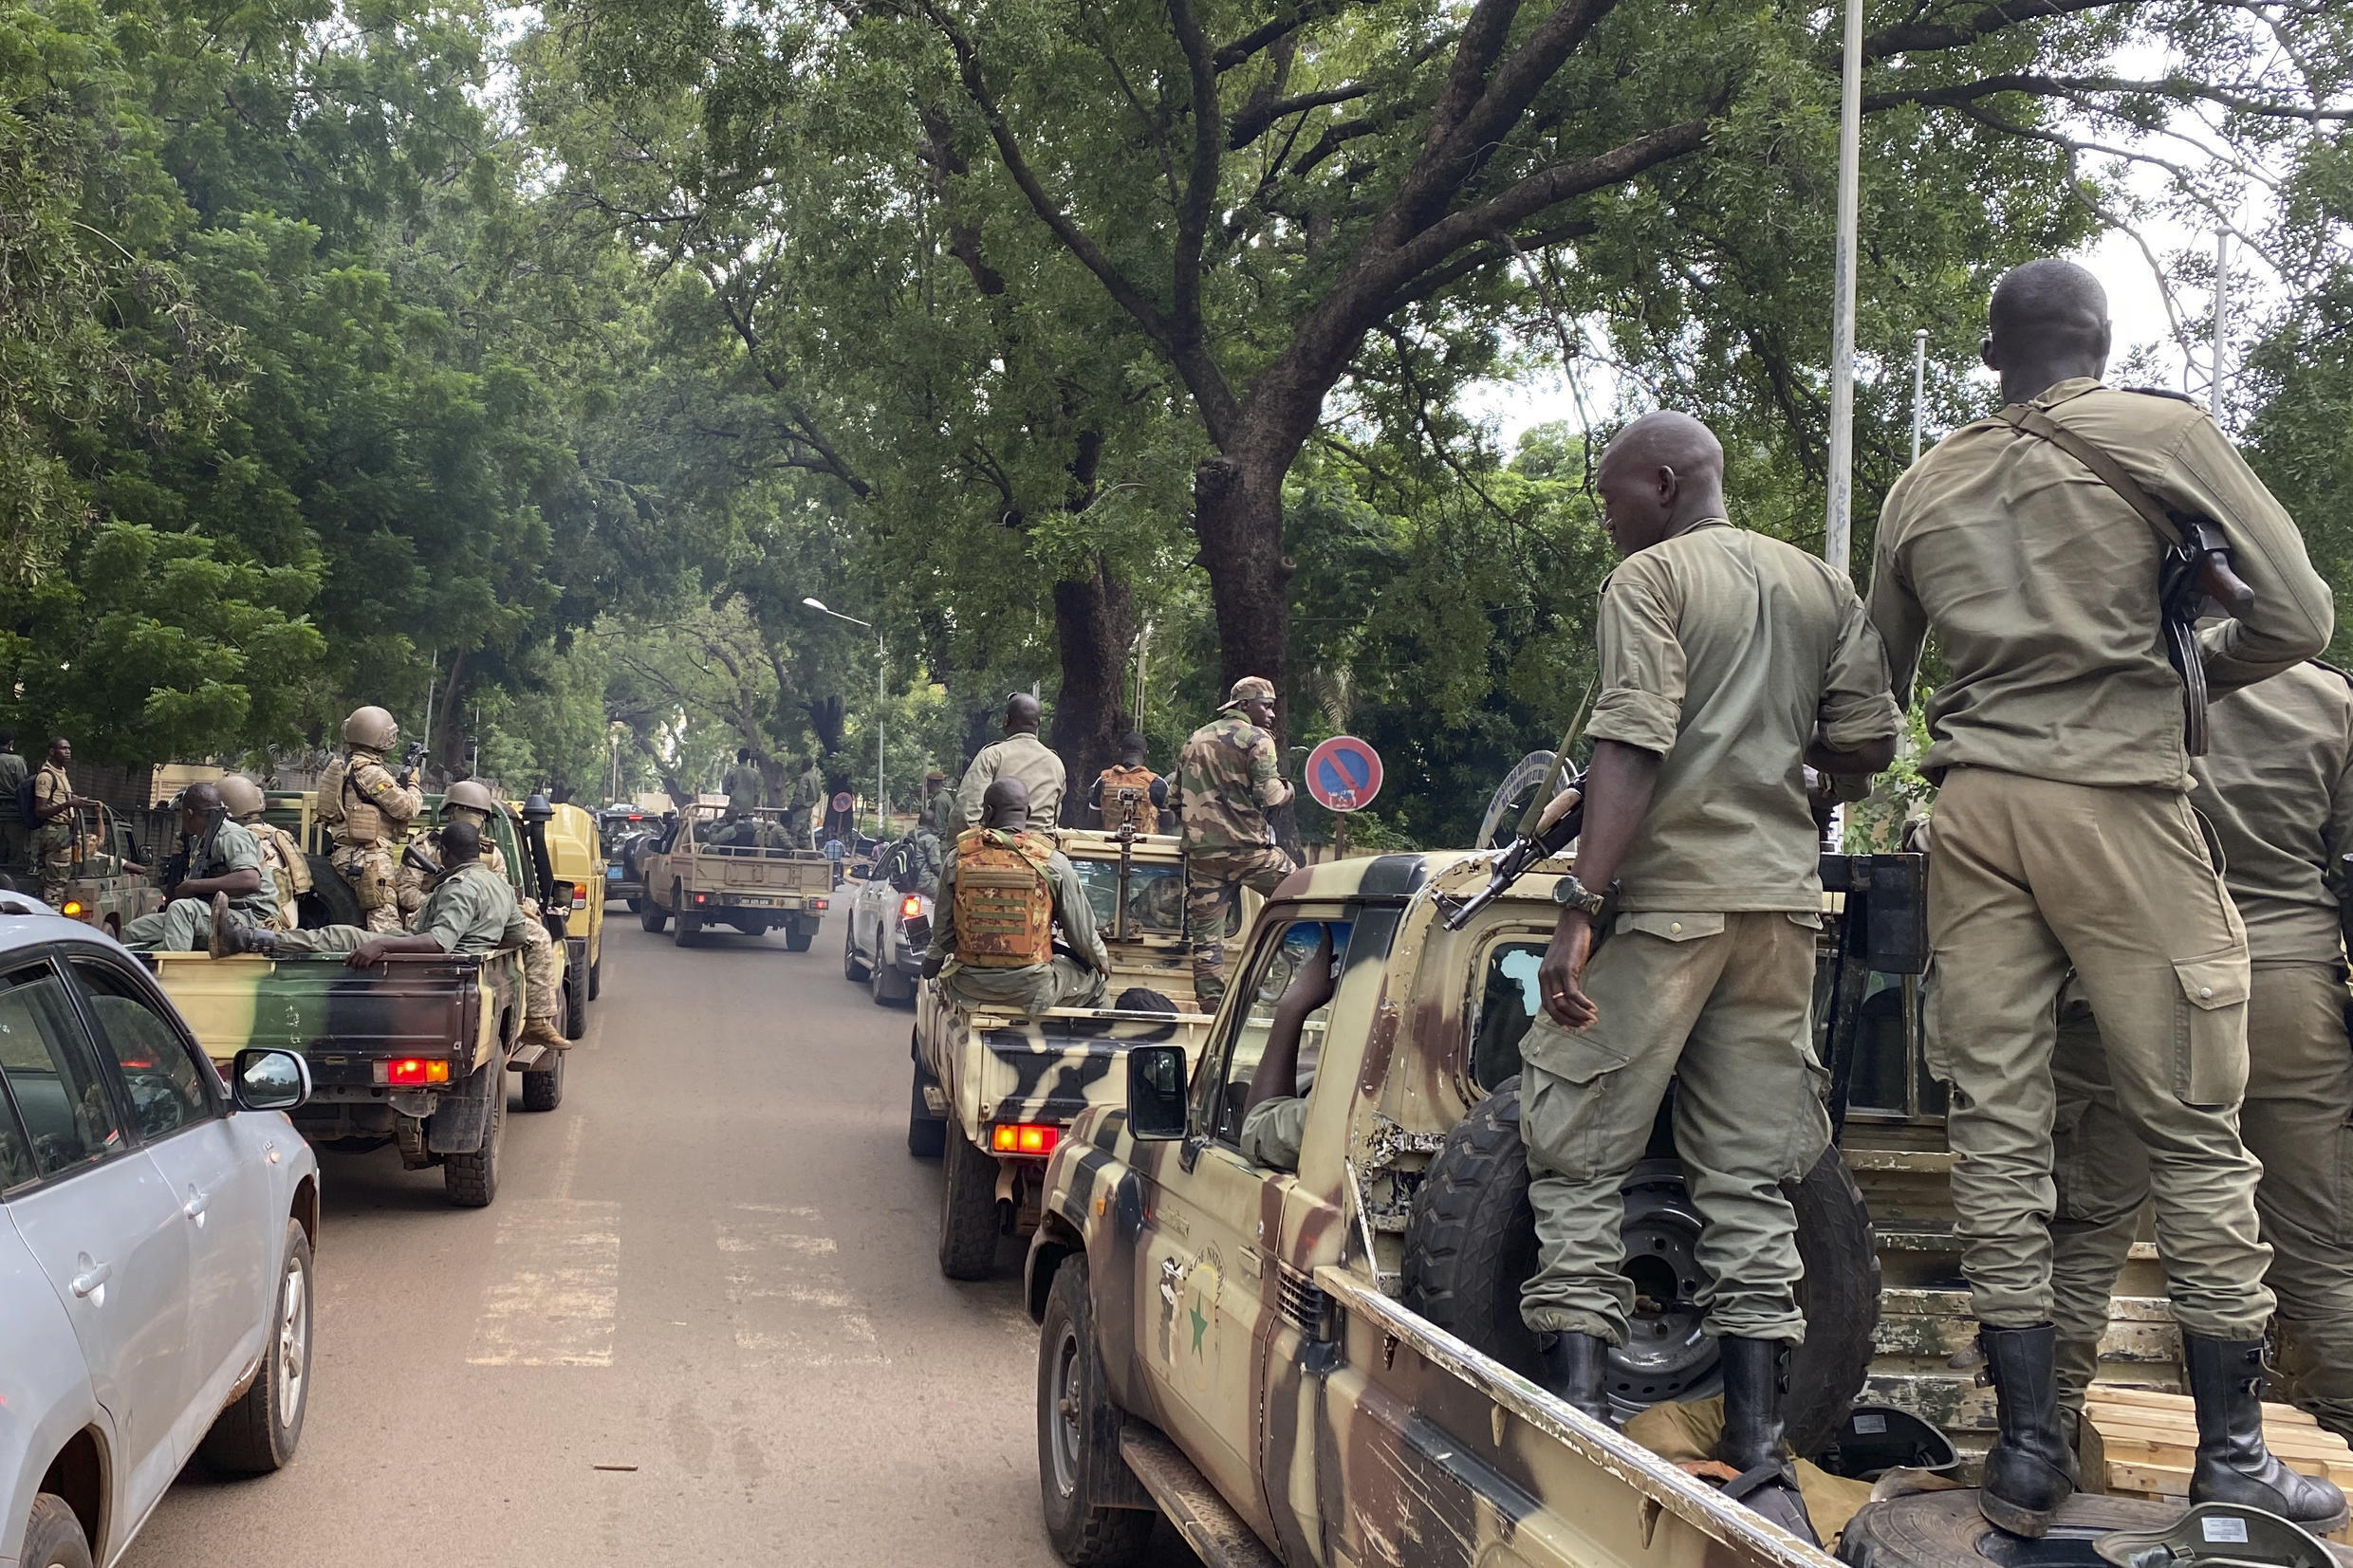 A military junta took power in Mali on August 18